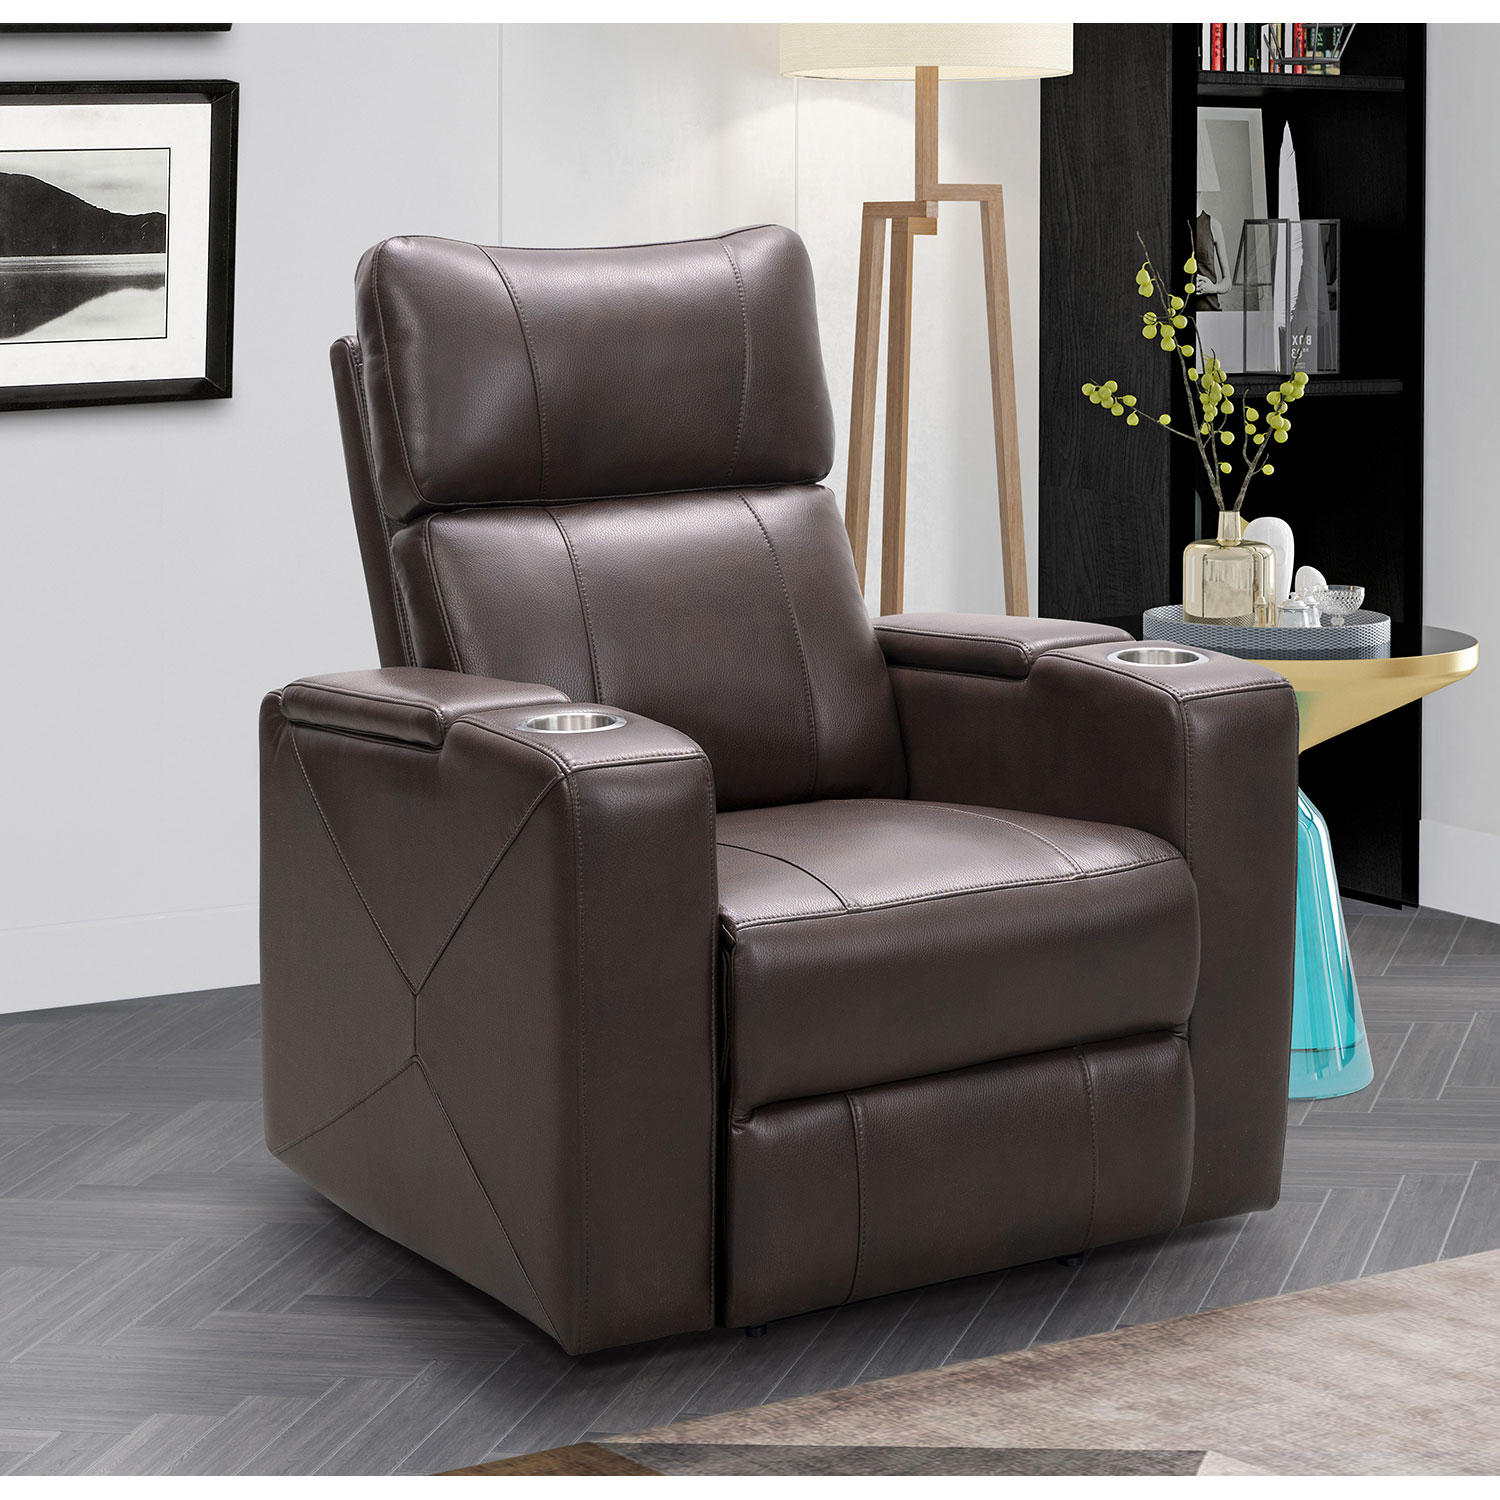 Mason Power Theatre Recliner with Power Adjustable Headrest